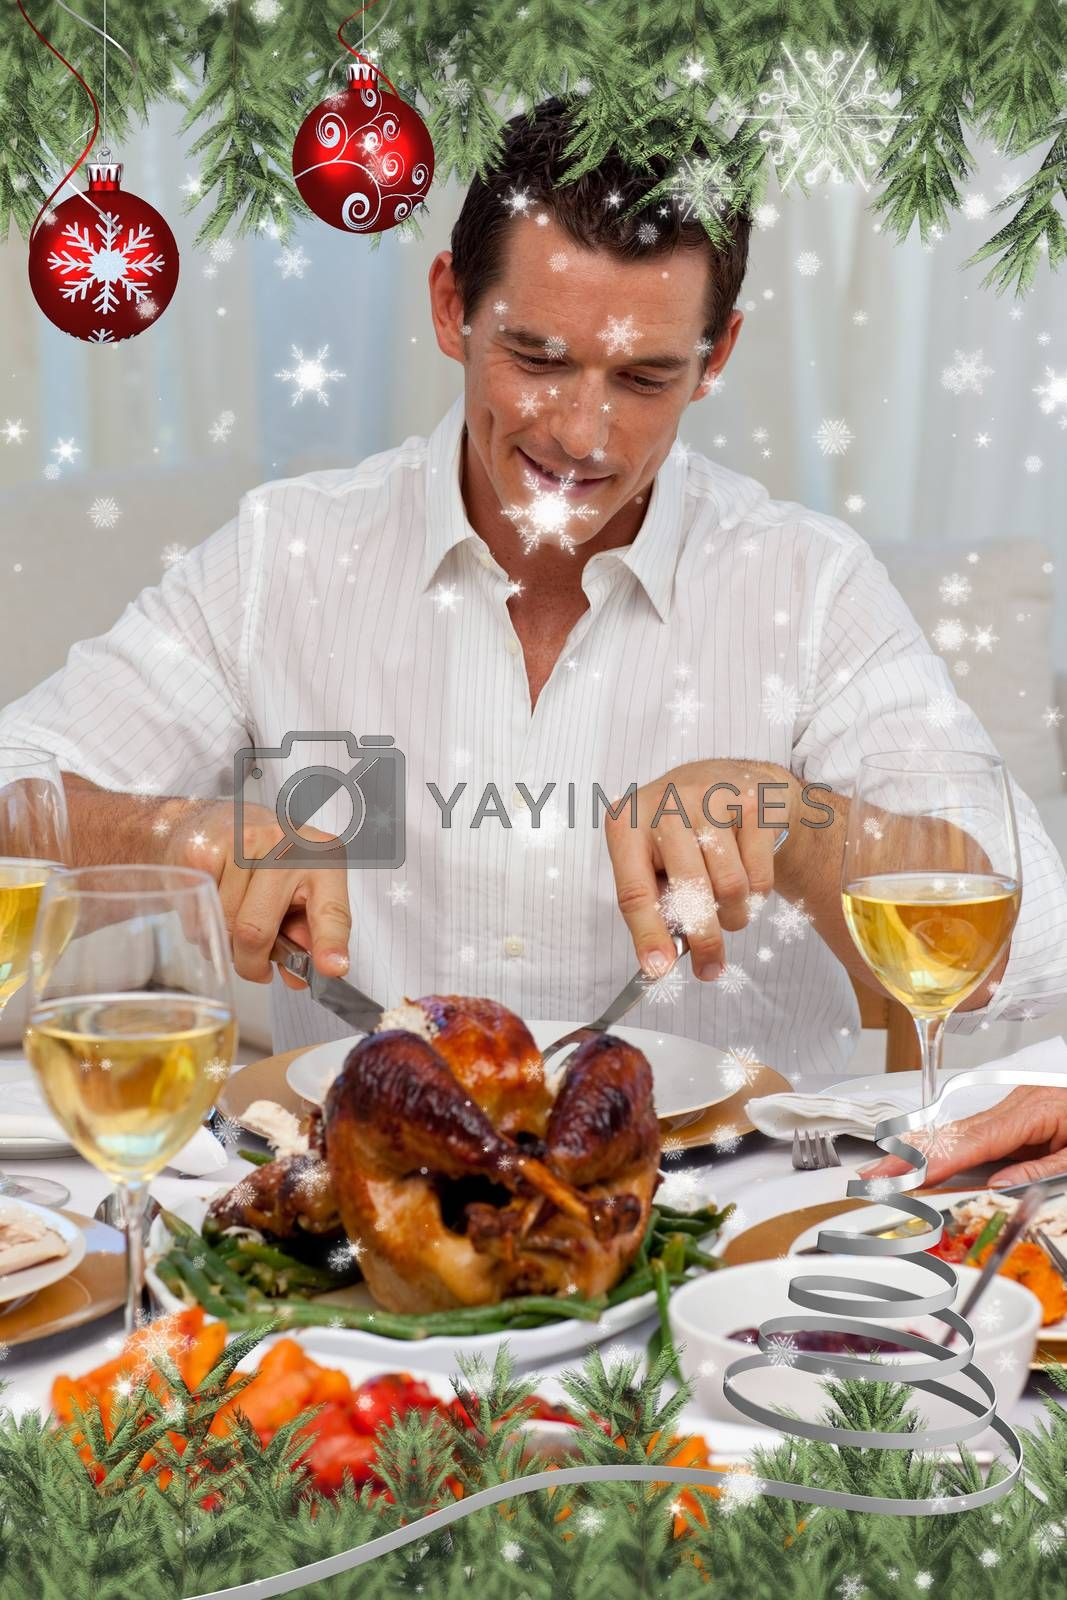 Attractive man eating turkey in Christmas dinner against snow falling